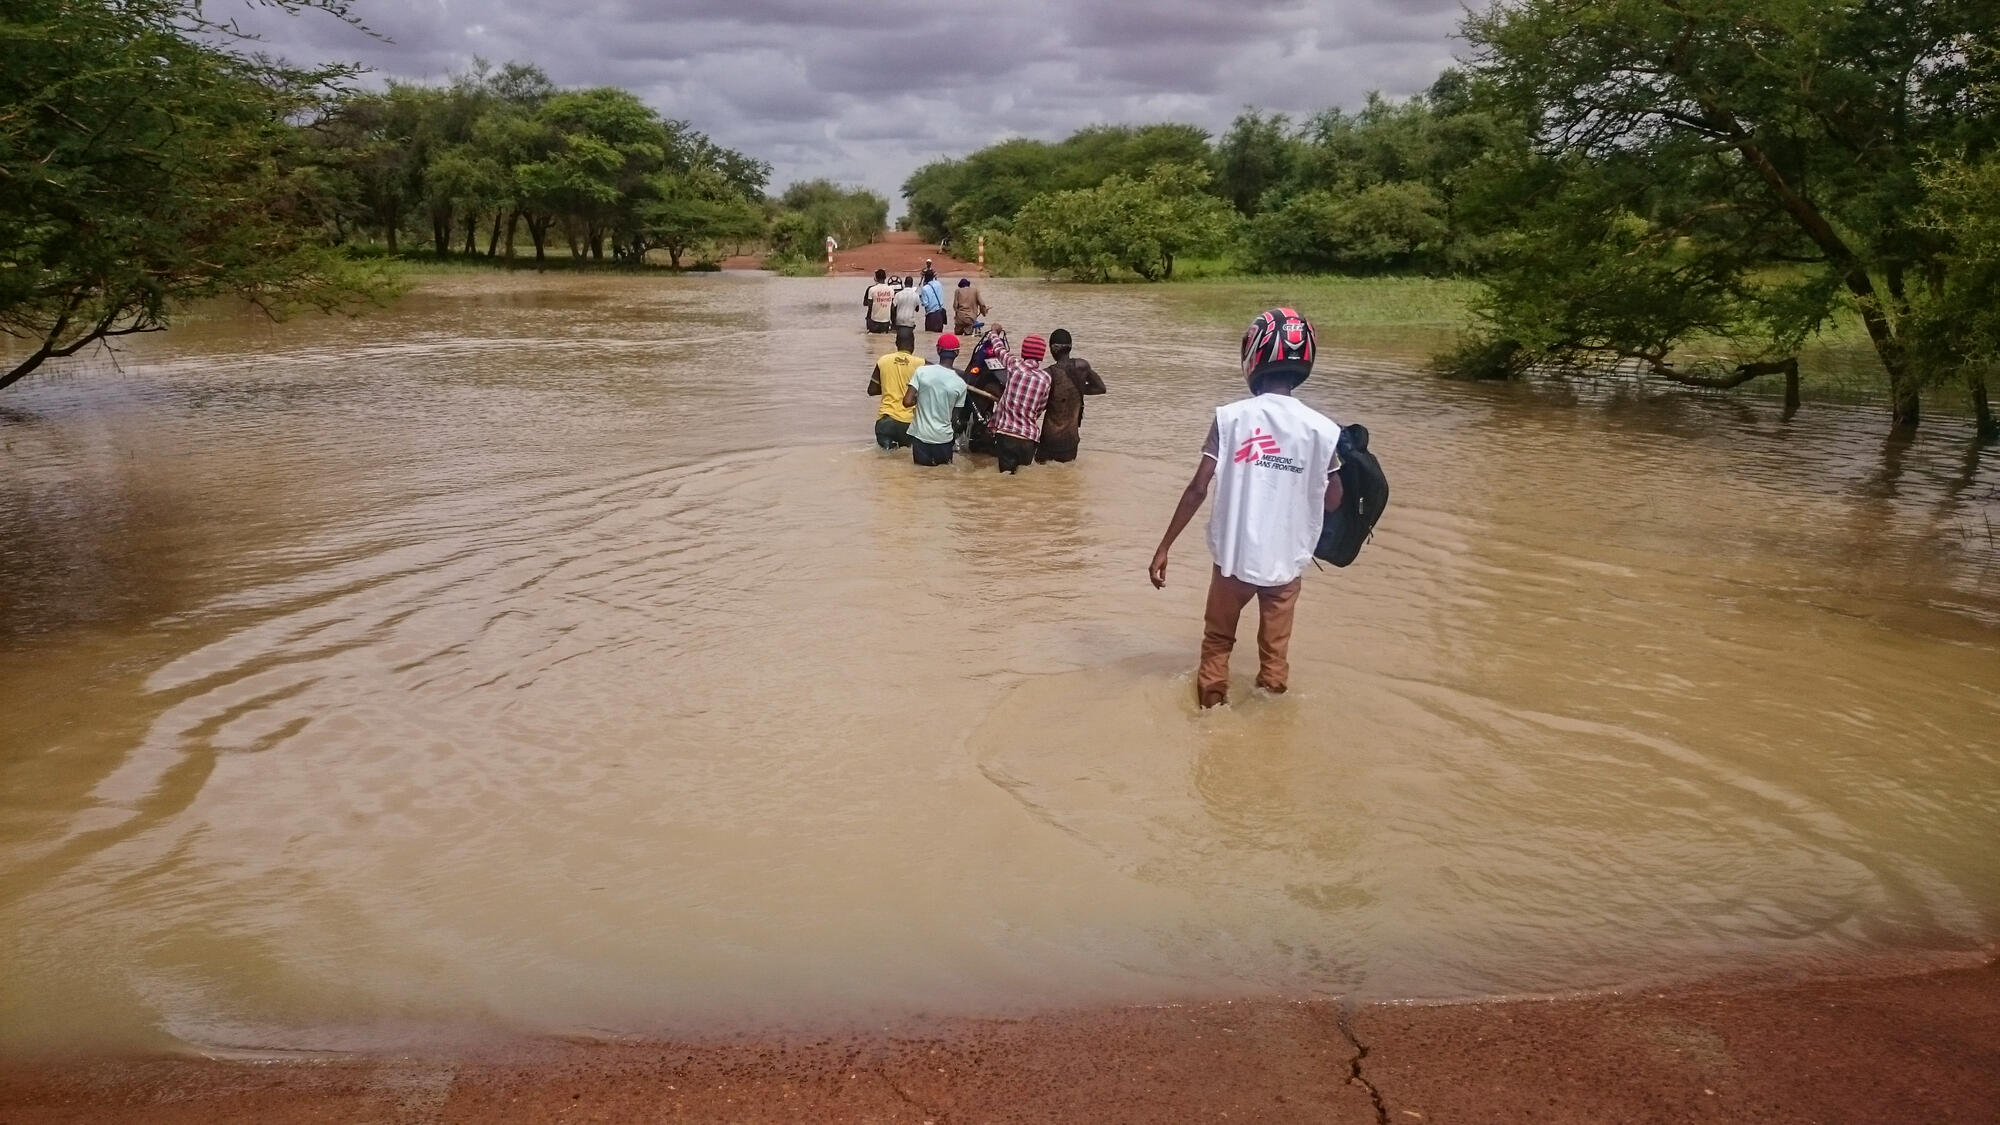 MSF staff crossing the river